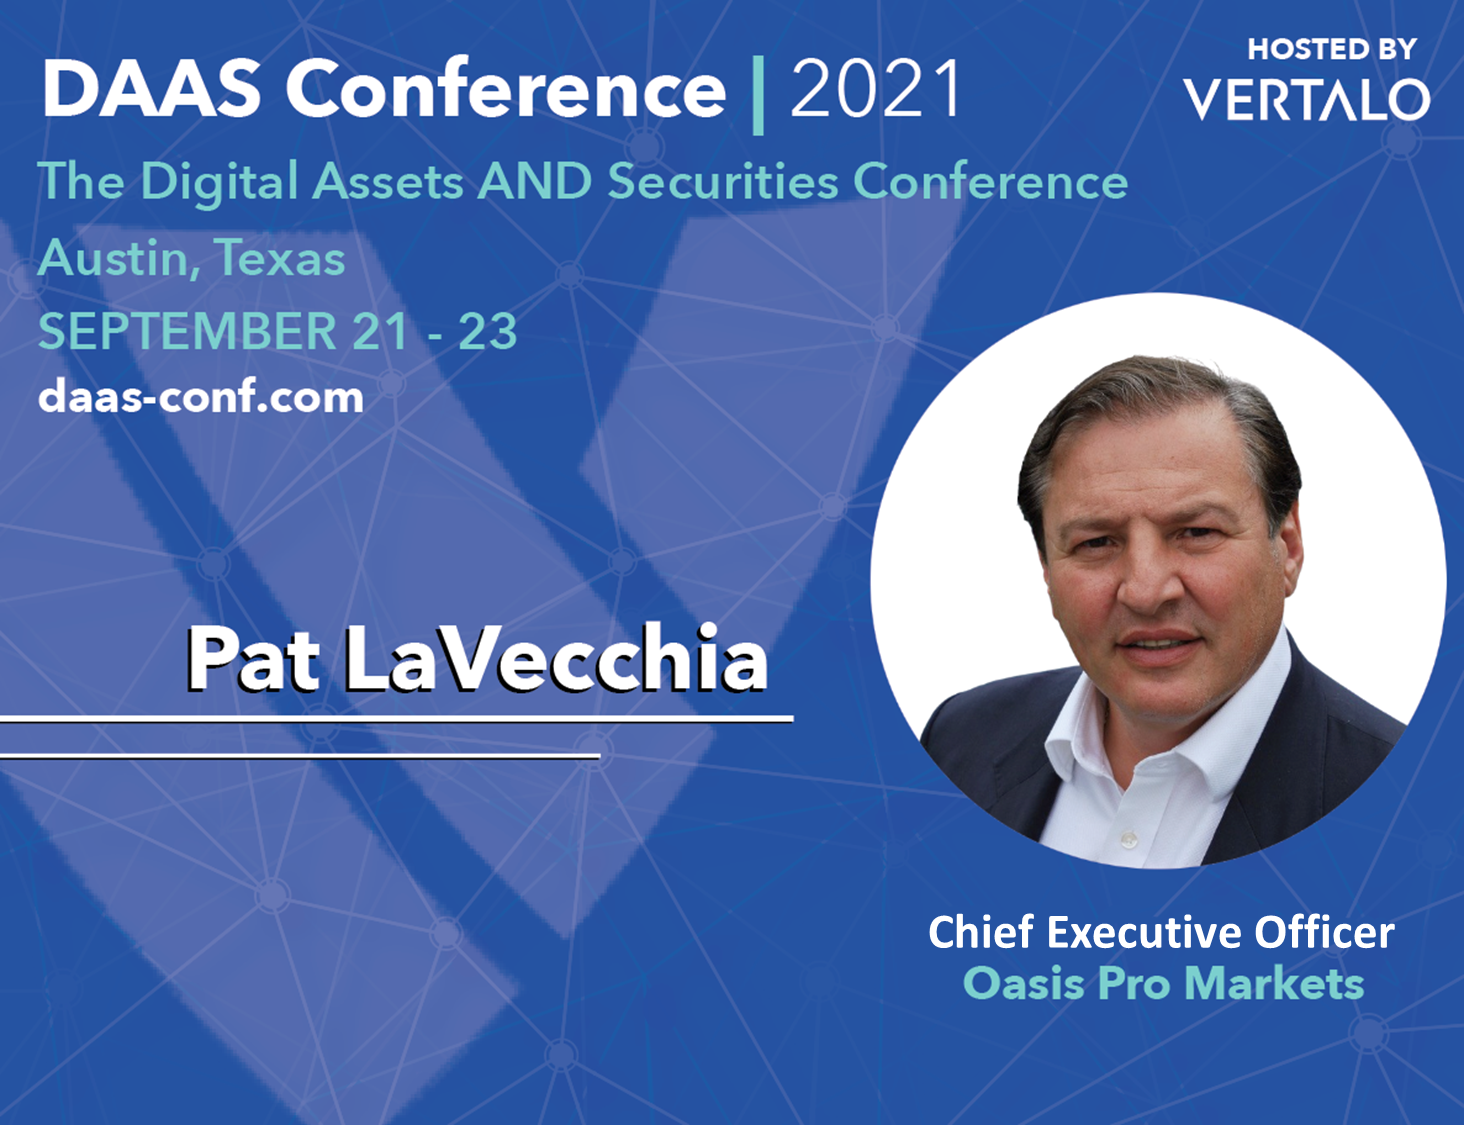 DAAS Conference 2021